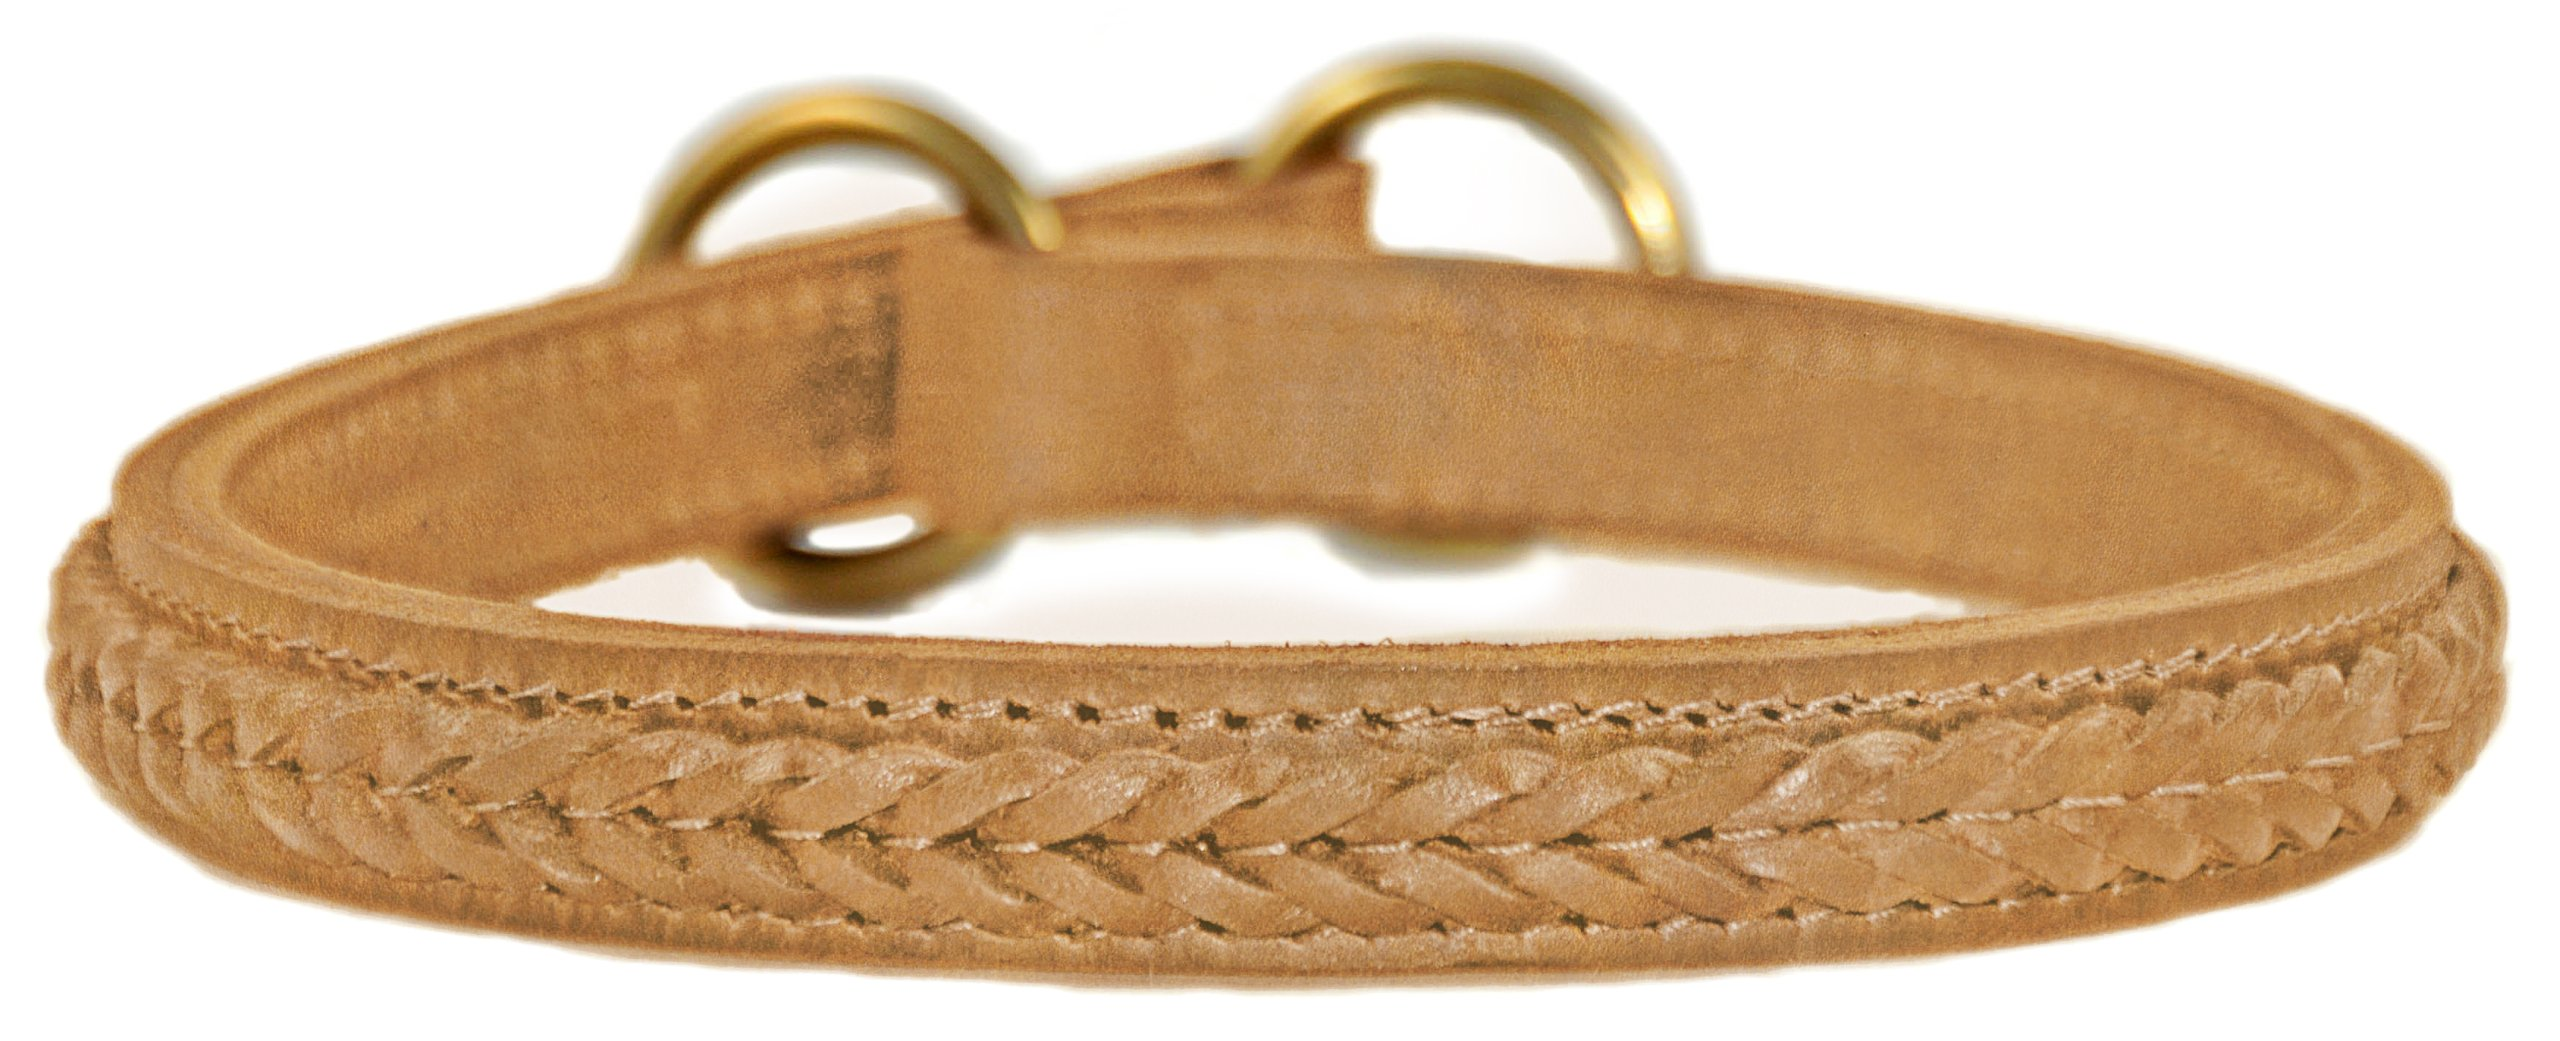 Dean and Tyler ''CLASSY KIER'', Dog Choke Collar with Braided Design and Brass Hardware - Tan - Size 22-Inch by 1-Inch - Fits Neck 20-Inch to 22-Inch